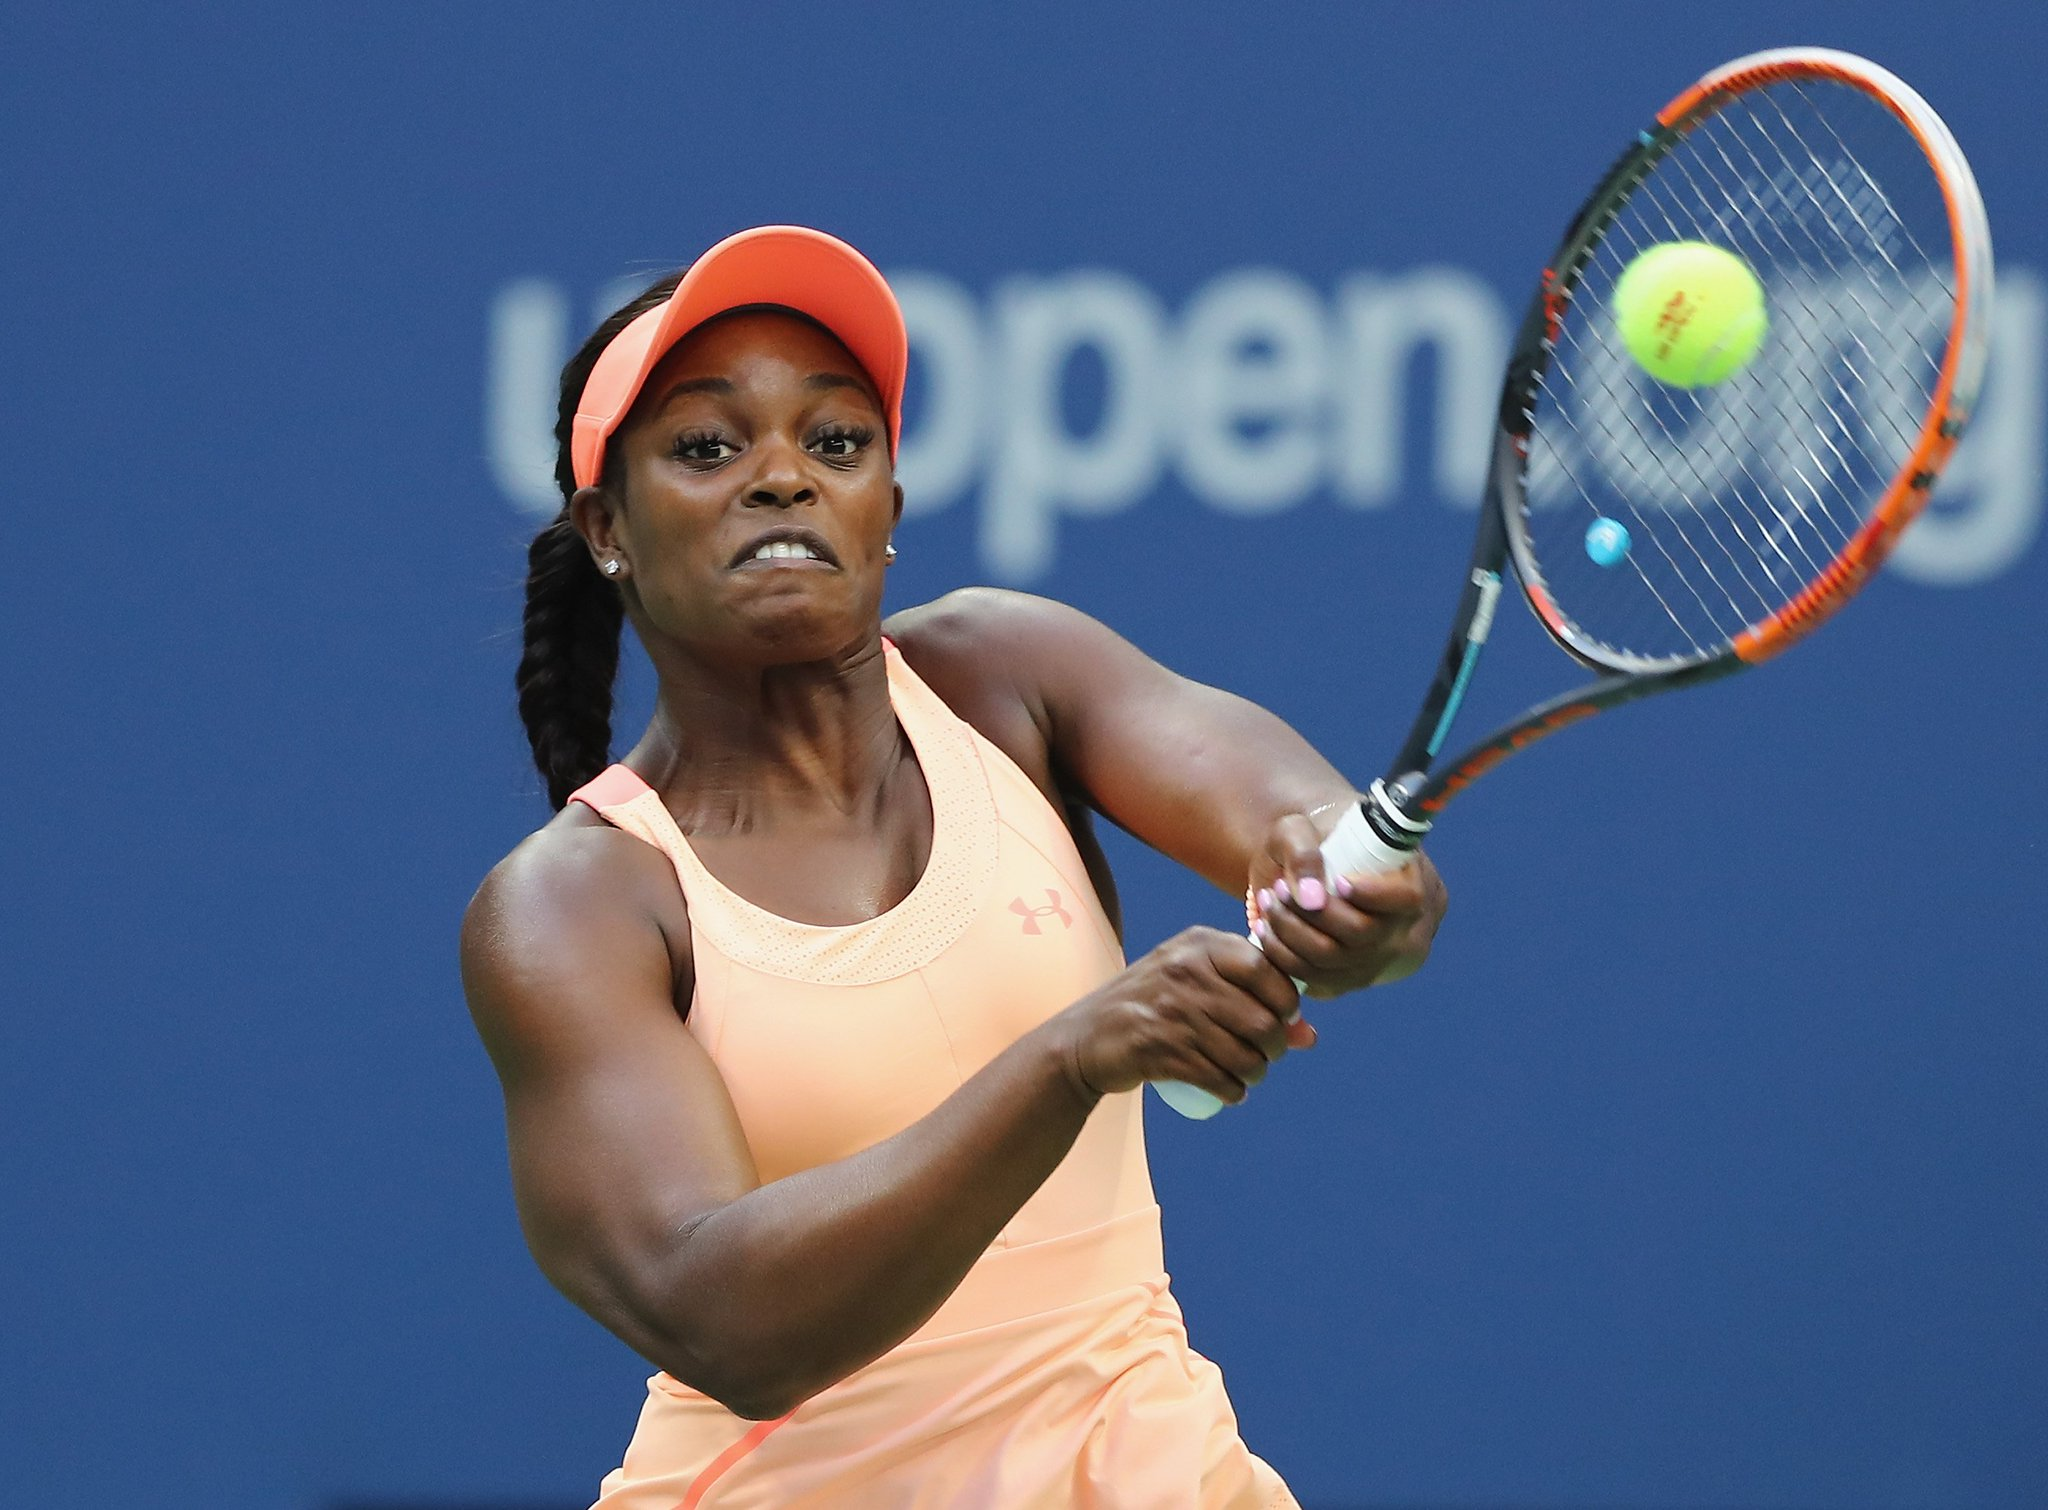 All square in NYC in the first set  Keys 2-2 Stephens  #USOpen   Live text & radio https://t.co/7RjzyIYjyq https://t.co/PGFIkLIAQ7